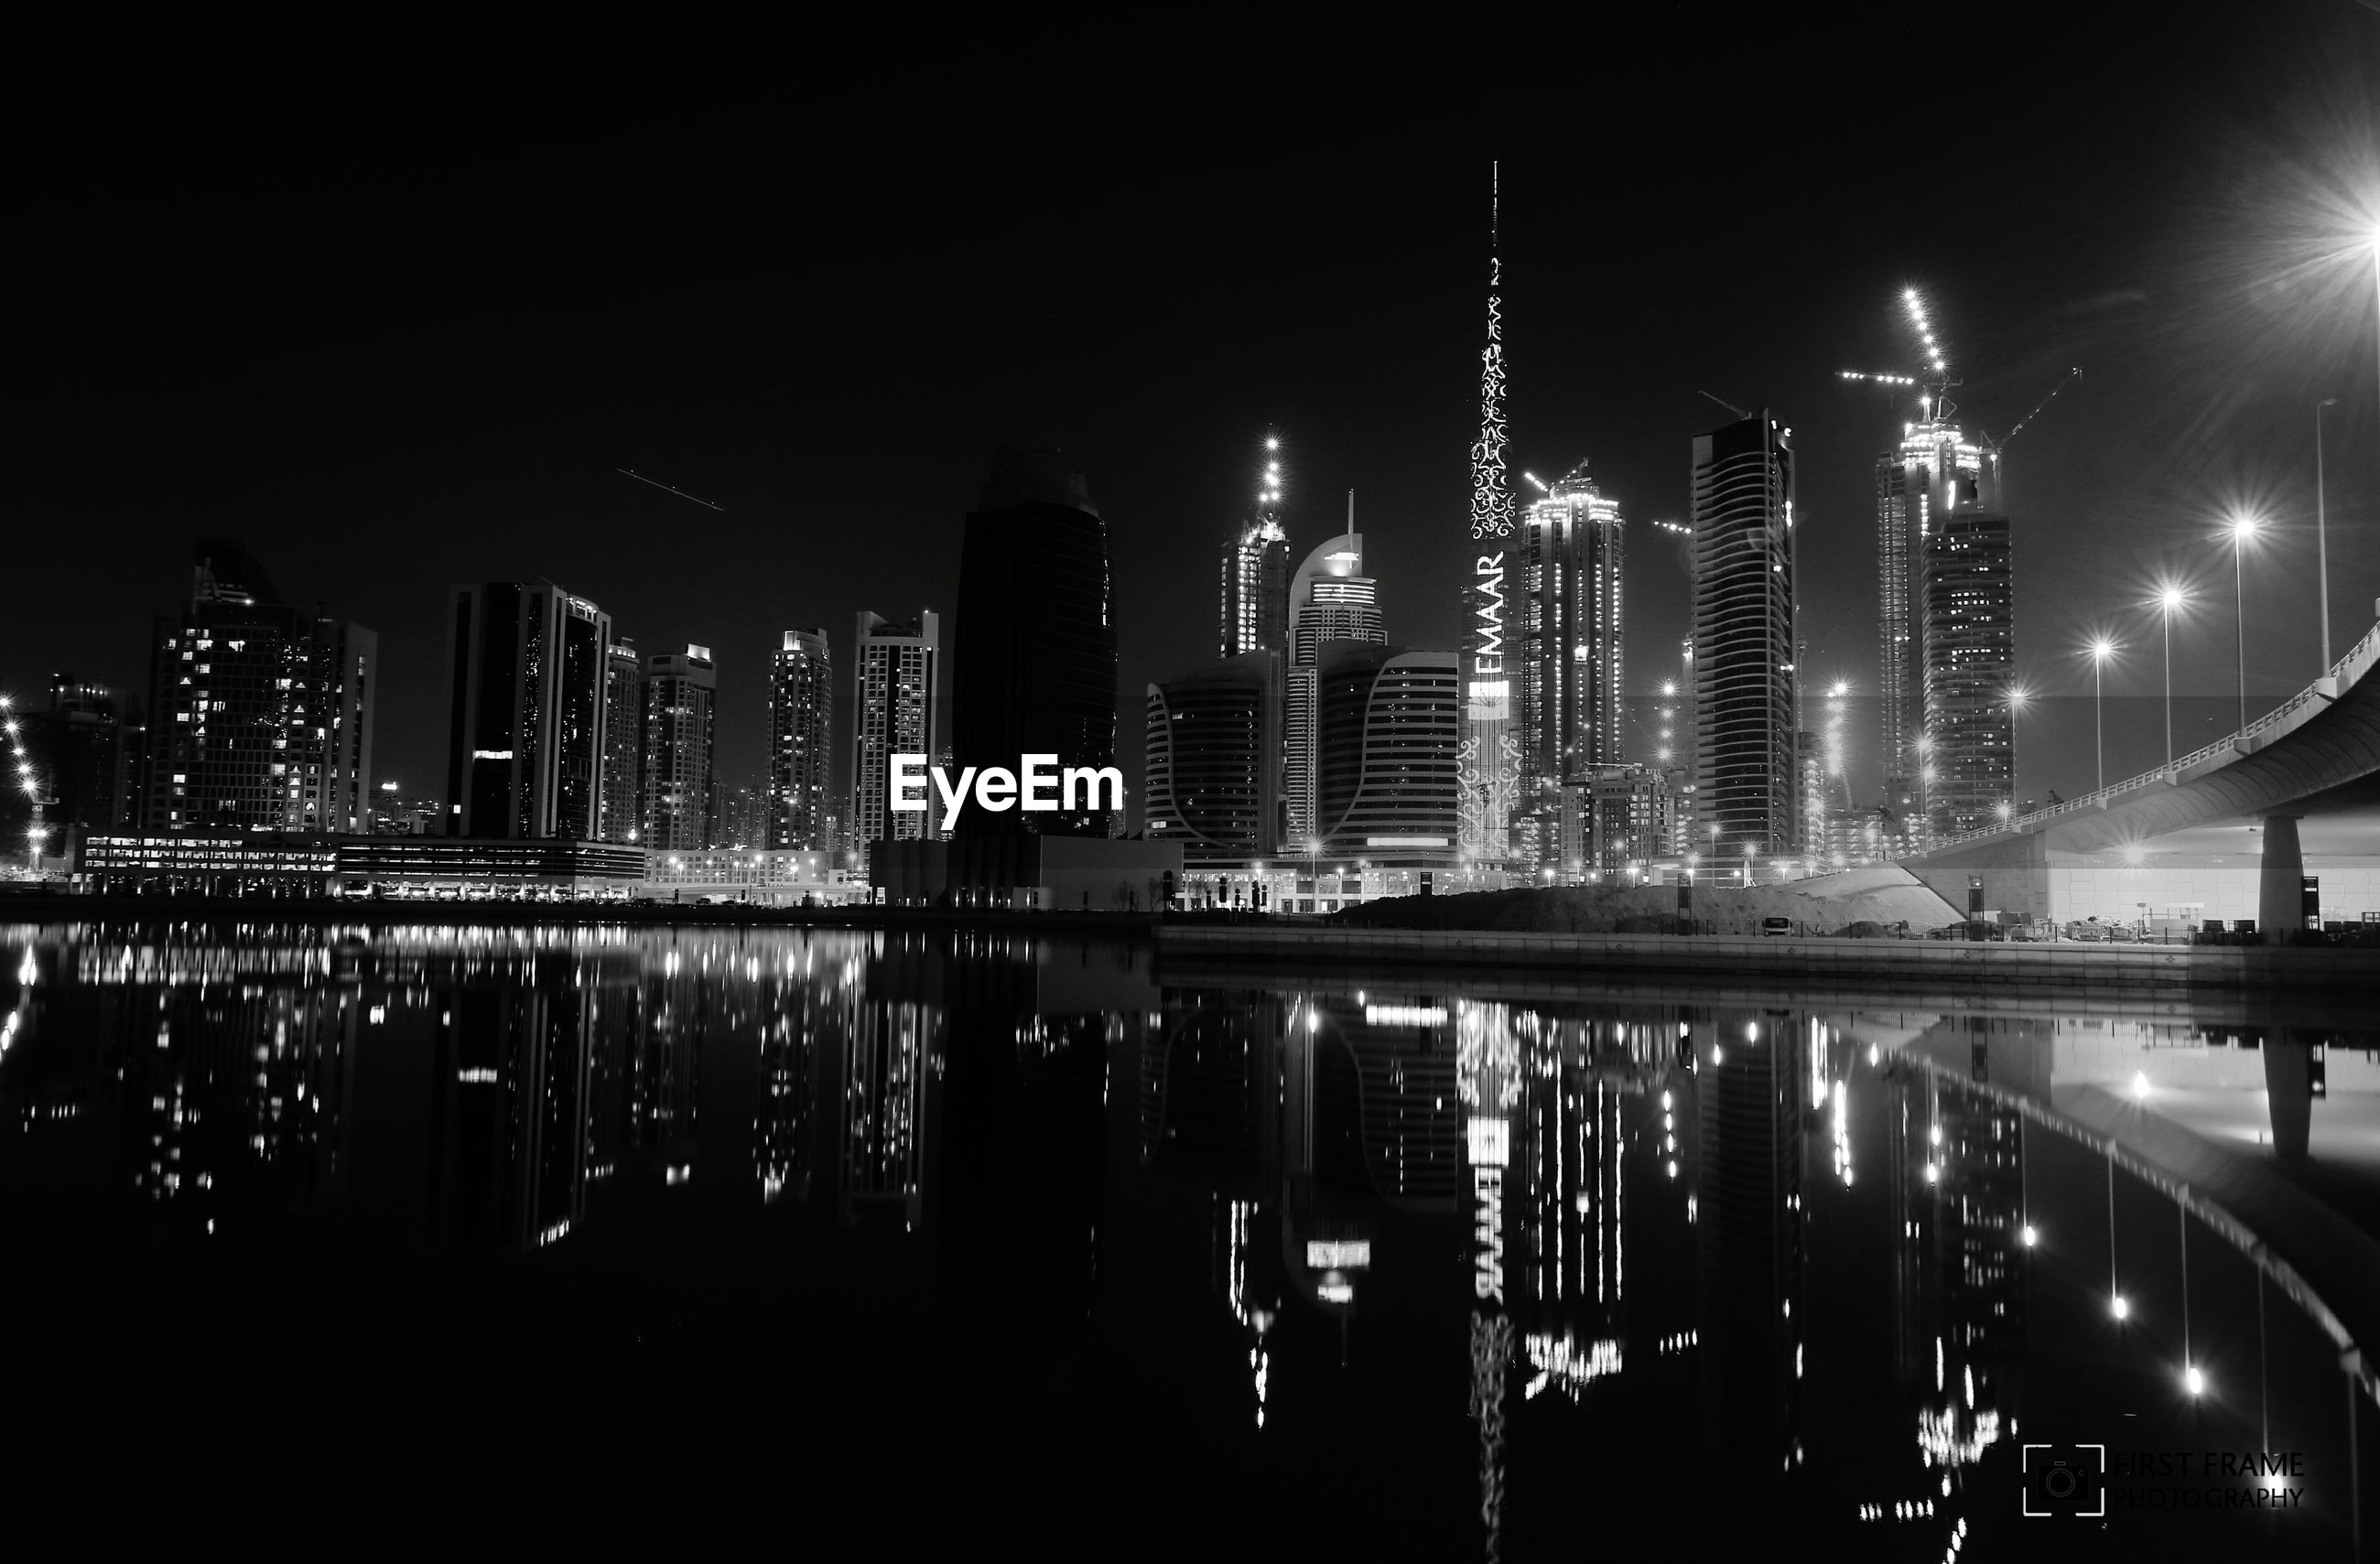 night, illuminated, skyscraper, city, architecture, building exterior, built structure, reflection, tall - high, modern, water, urban skyline, tower, cityscape, river, office building, financial district, travel destinations, waterfront, capital cities